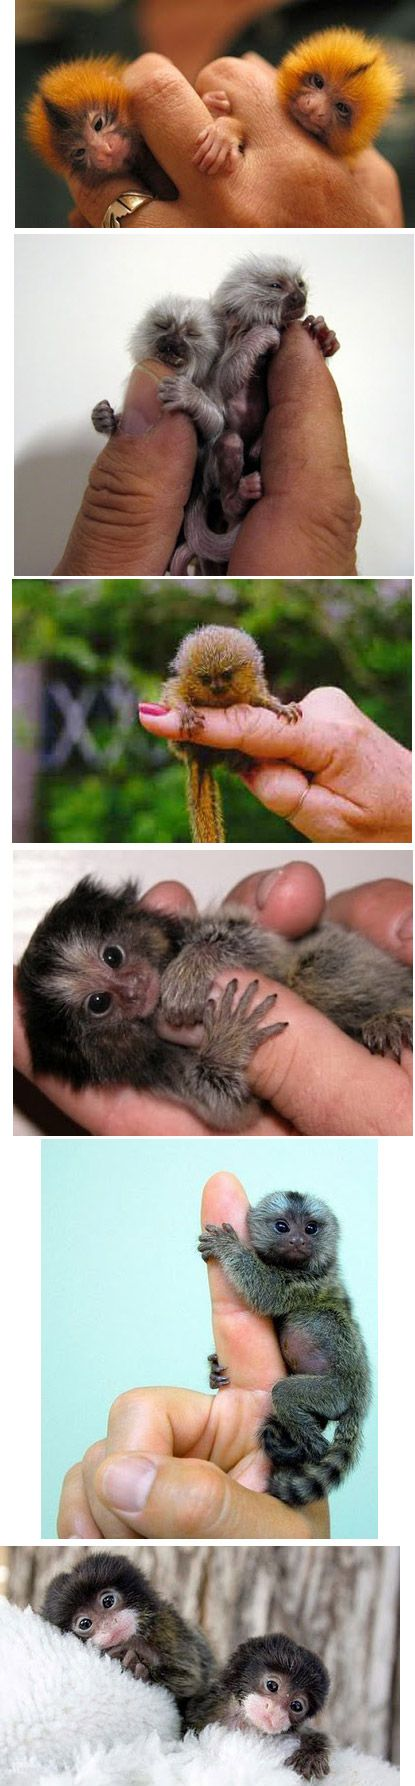 ⭐Finger Monkeys from The Rain Forest⭐One of the cutest things on the planet!